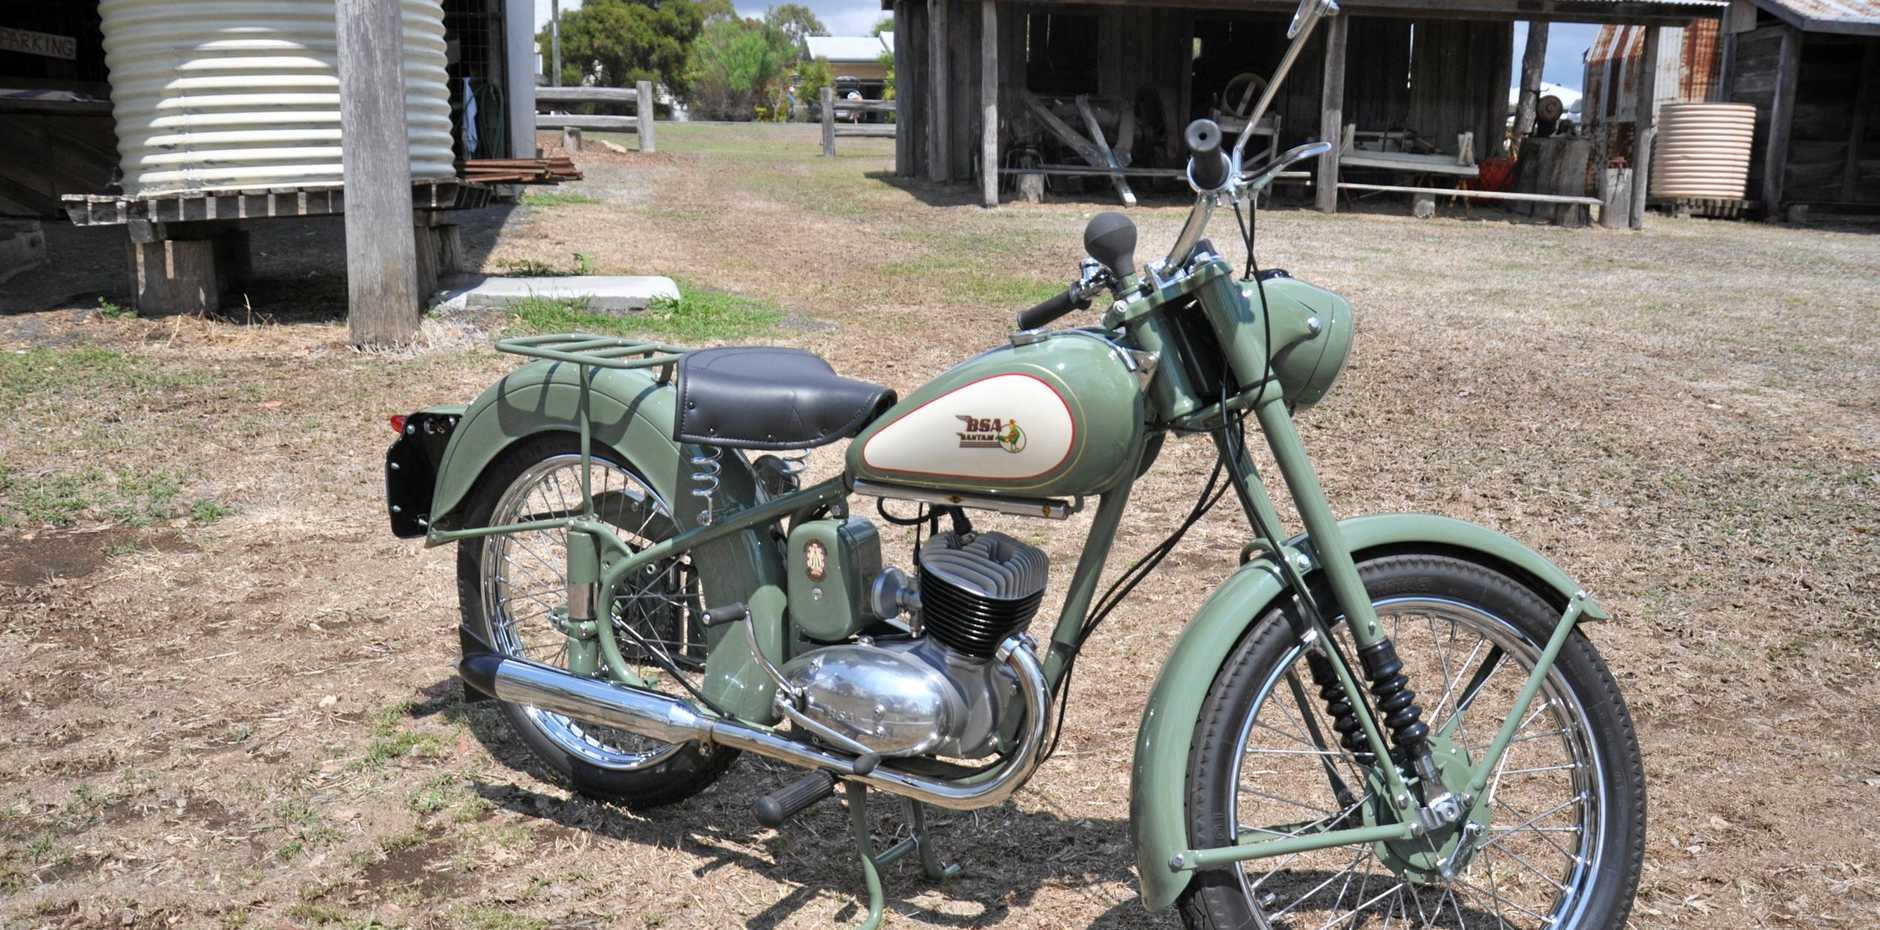 ALL CLASS: The restored 1962 BSA Bantam D1's value has appreciated significantly.